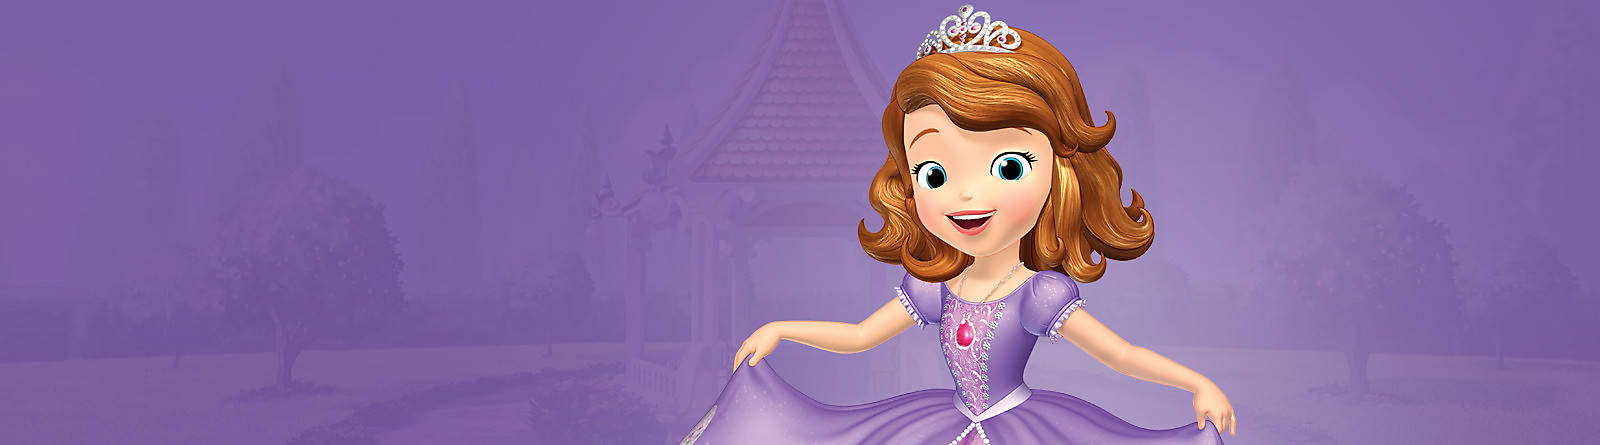 Sofia The First Discover a range of wonderful Sofia the First merchandise including toys, costumes, figurines and more